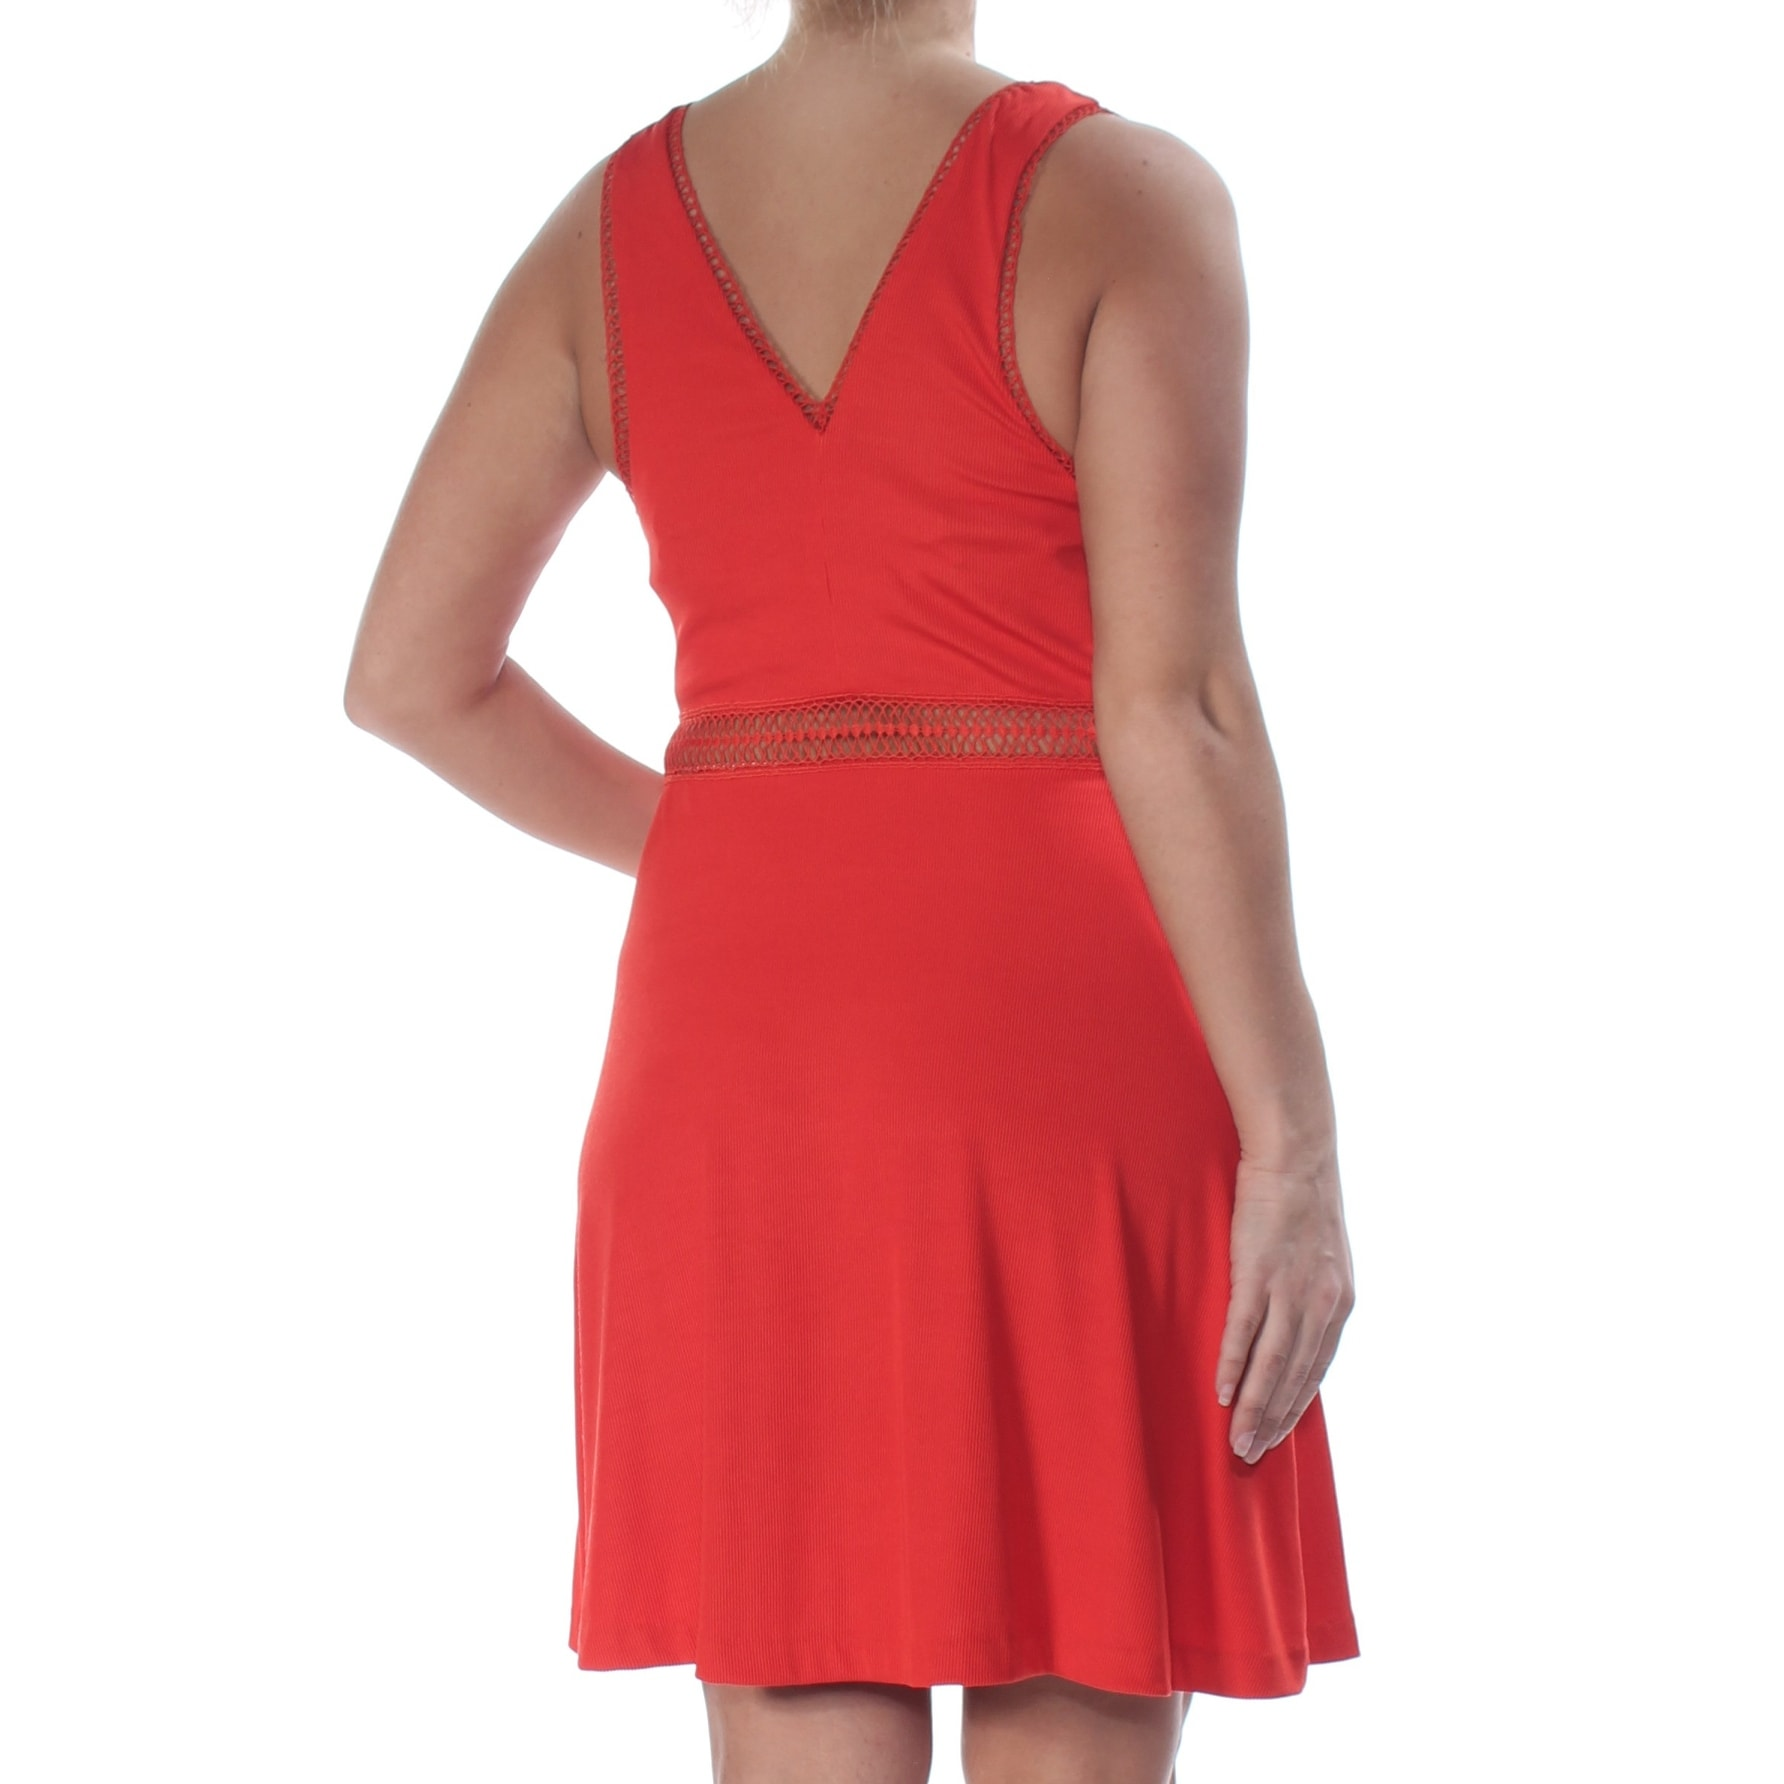 Free People Womens Red Lace Inserts Sleeveless V Neck Above The Knee Fit Flare Dress Size 2